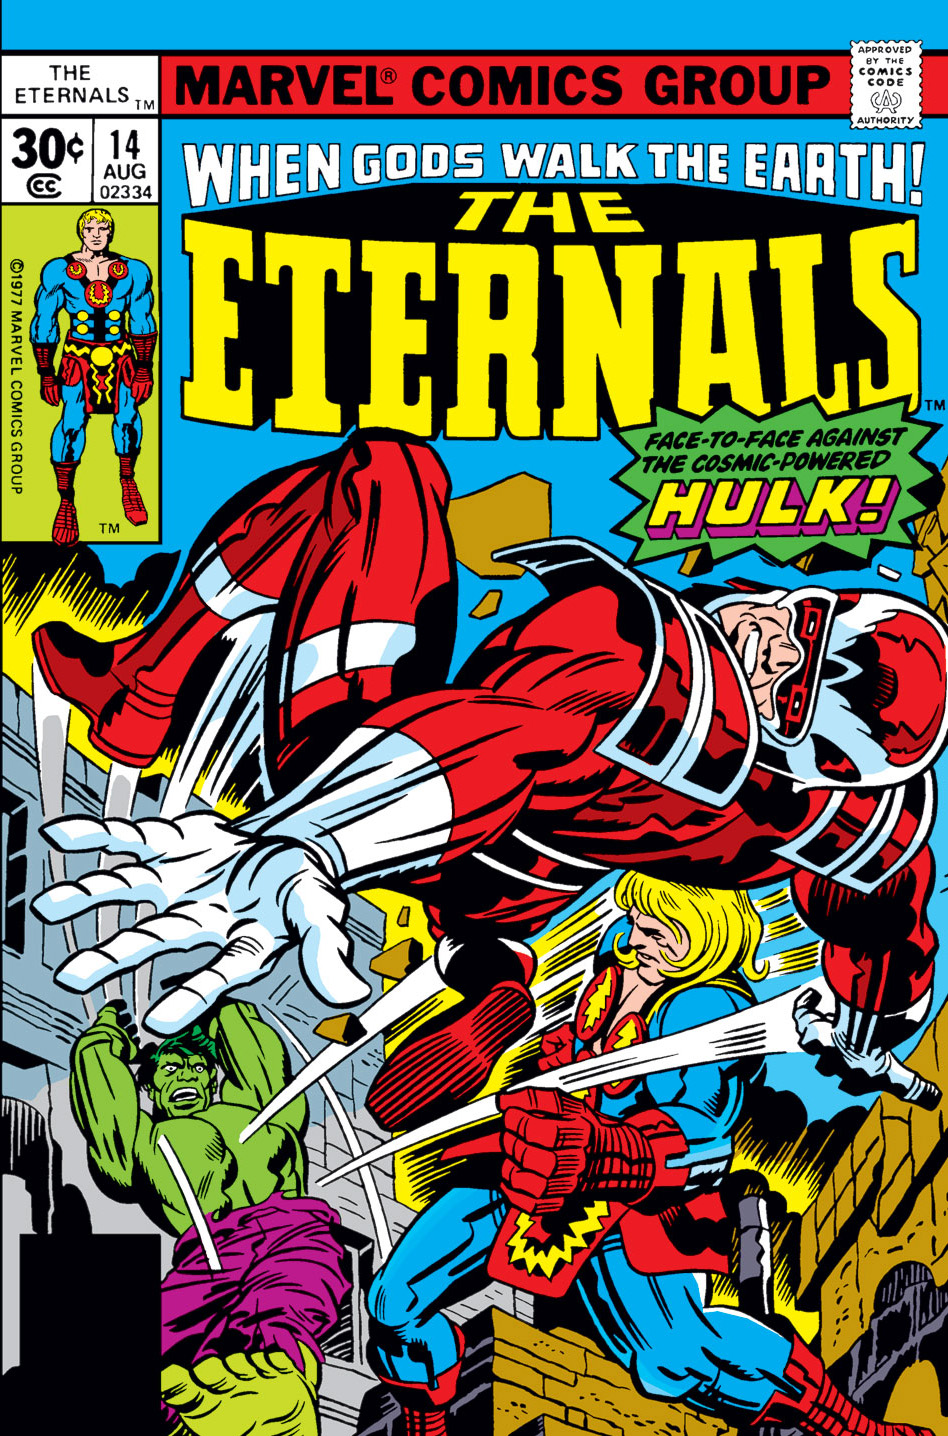 The Eternals (1976) #14, cover penciled by Jack Kirby & inked by Mike Royer.